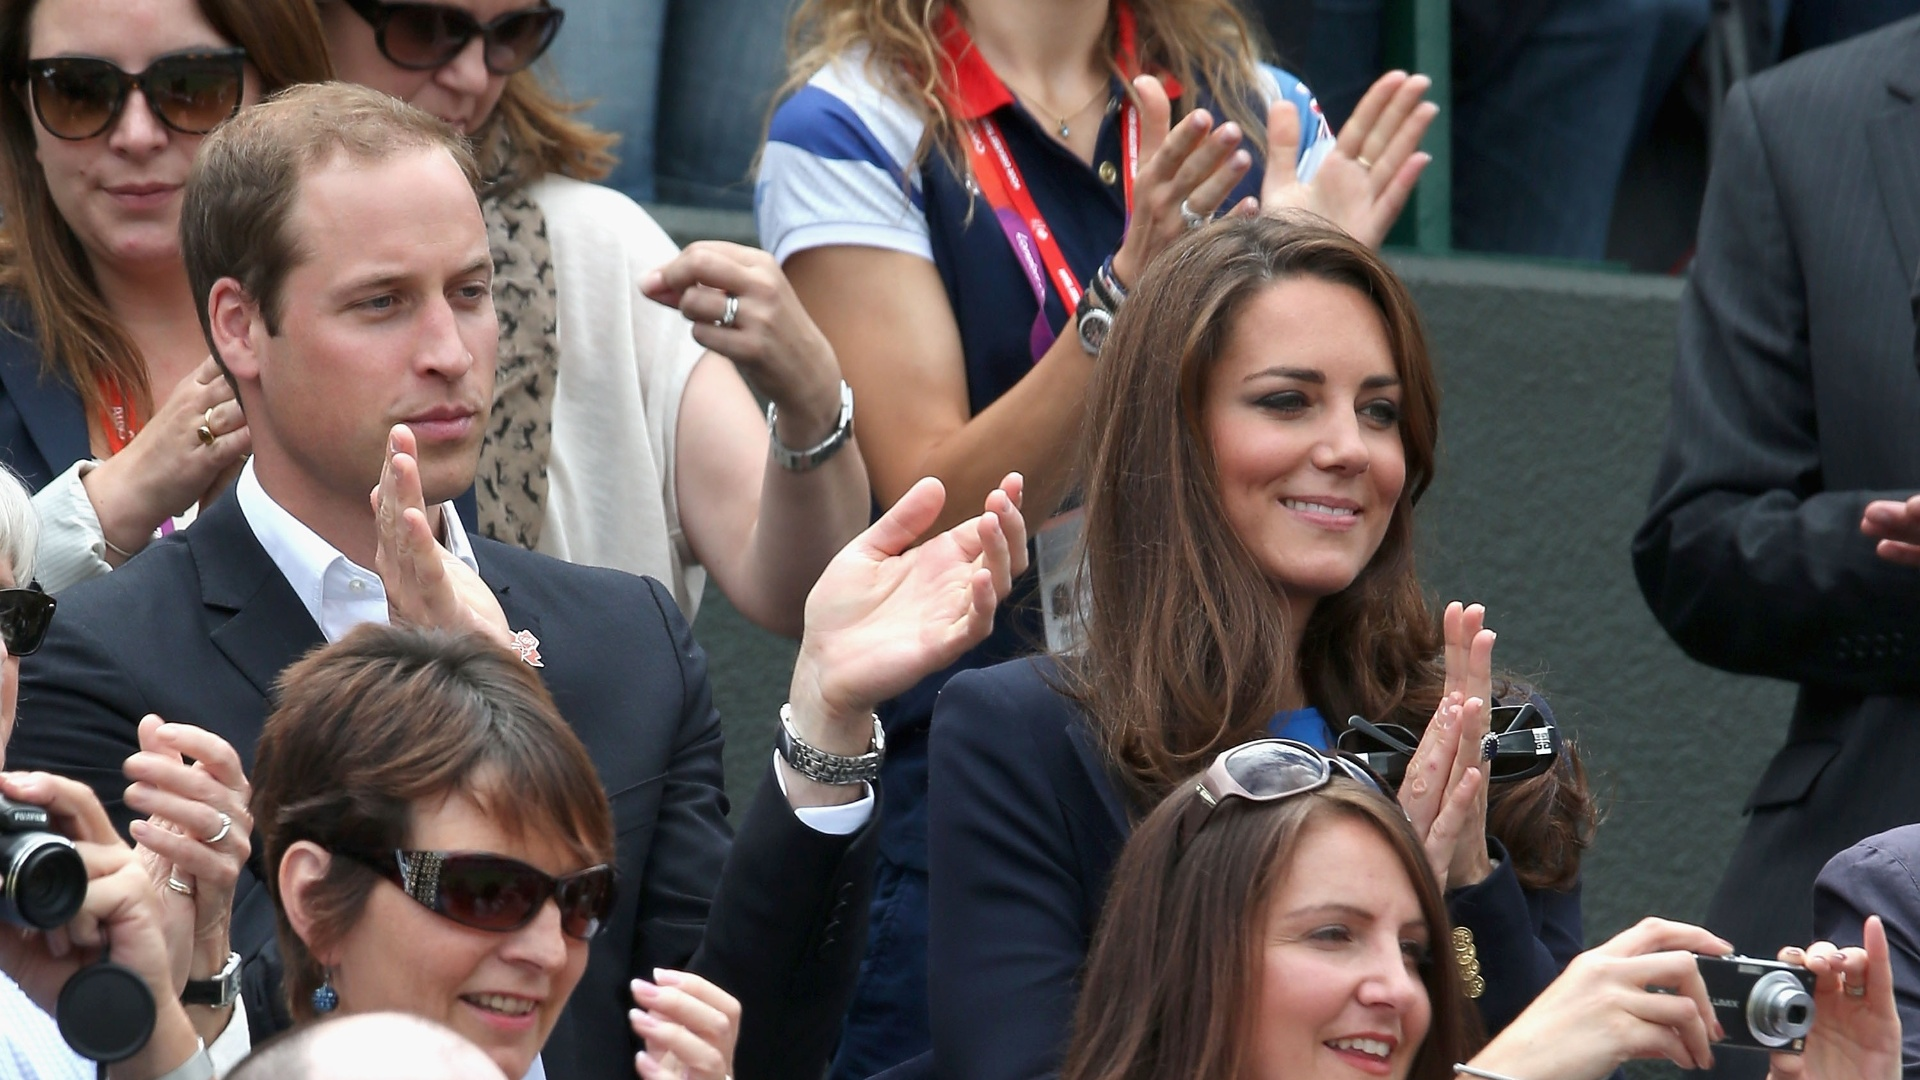 Príncipe William e sua esposa Kate prestigiam vitória de Andy Murray nas quartas de final